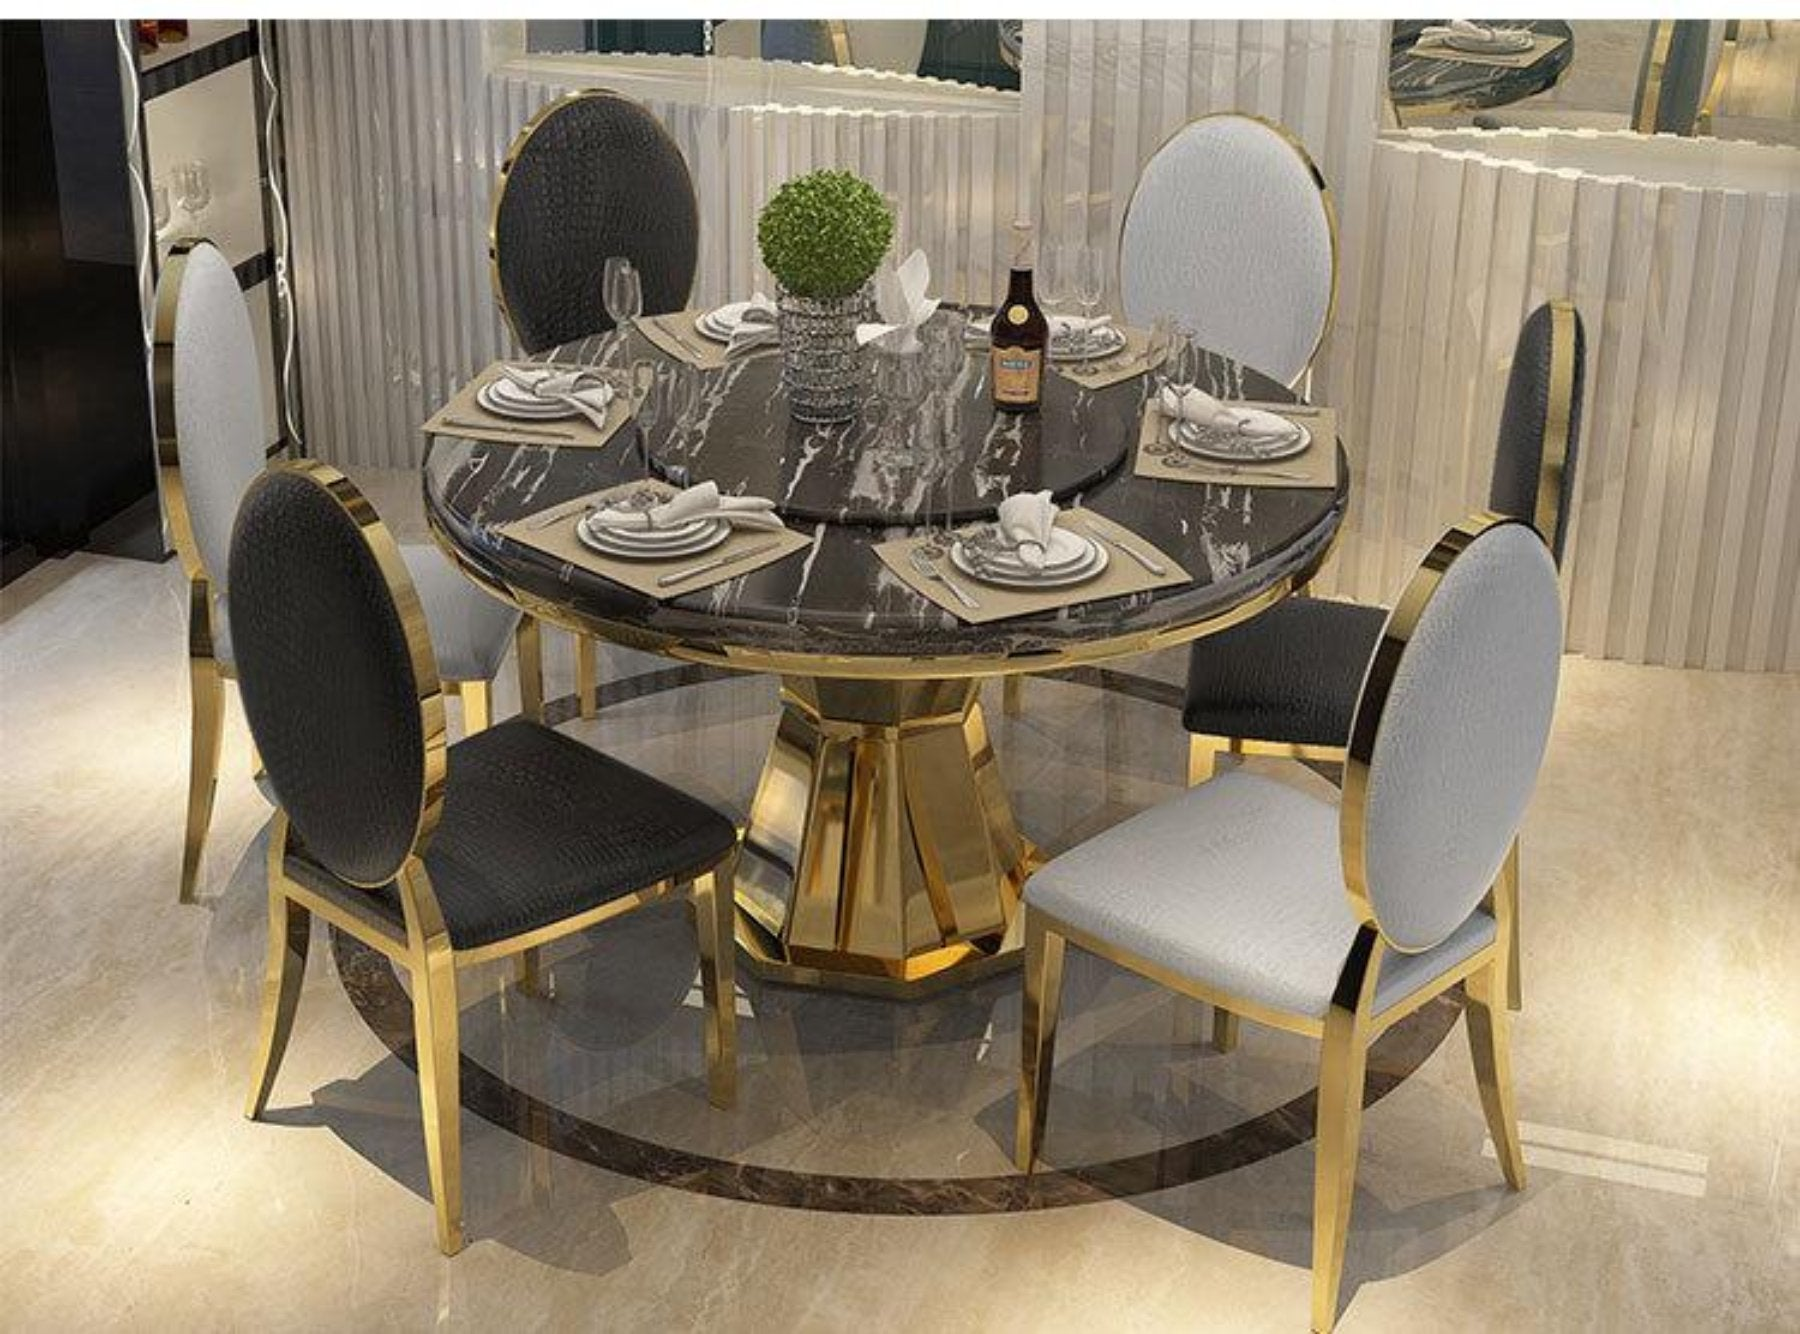 Marvelous Golden Round Marble Top Dining Table With Luxury Chairs My Download Free Architecture Designs Xaembritishbridgeorg